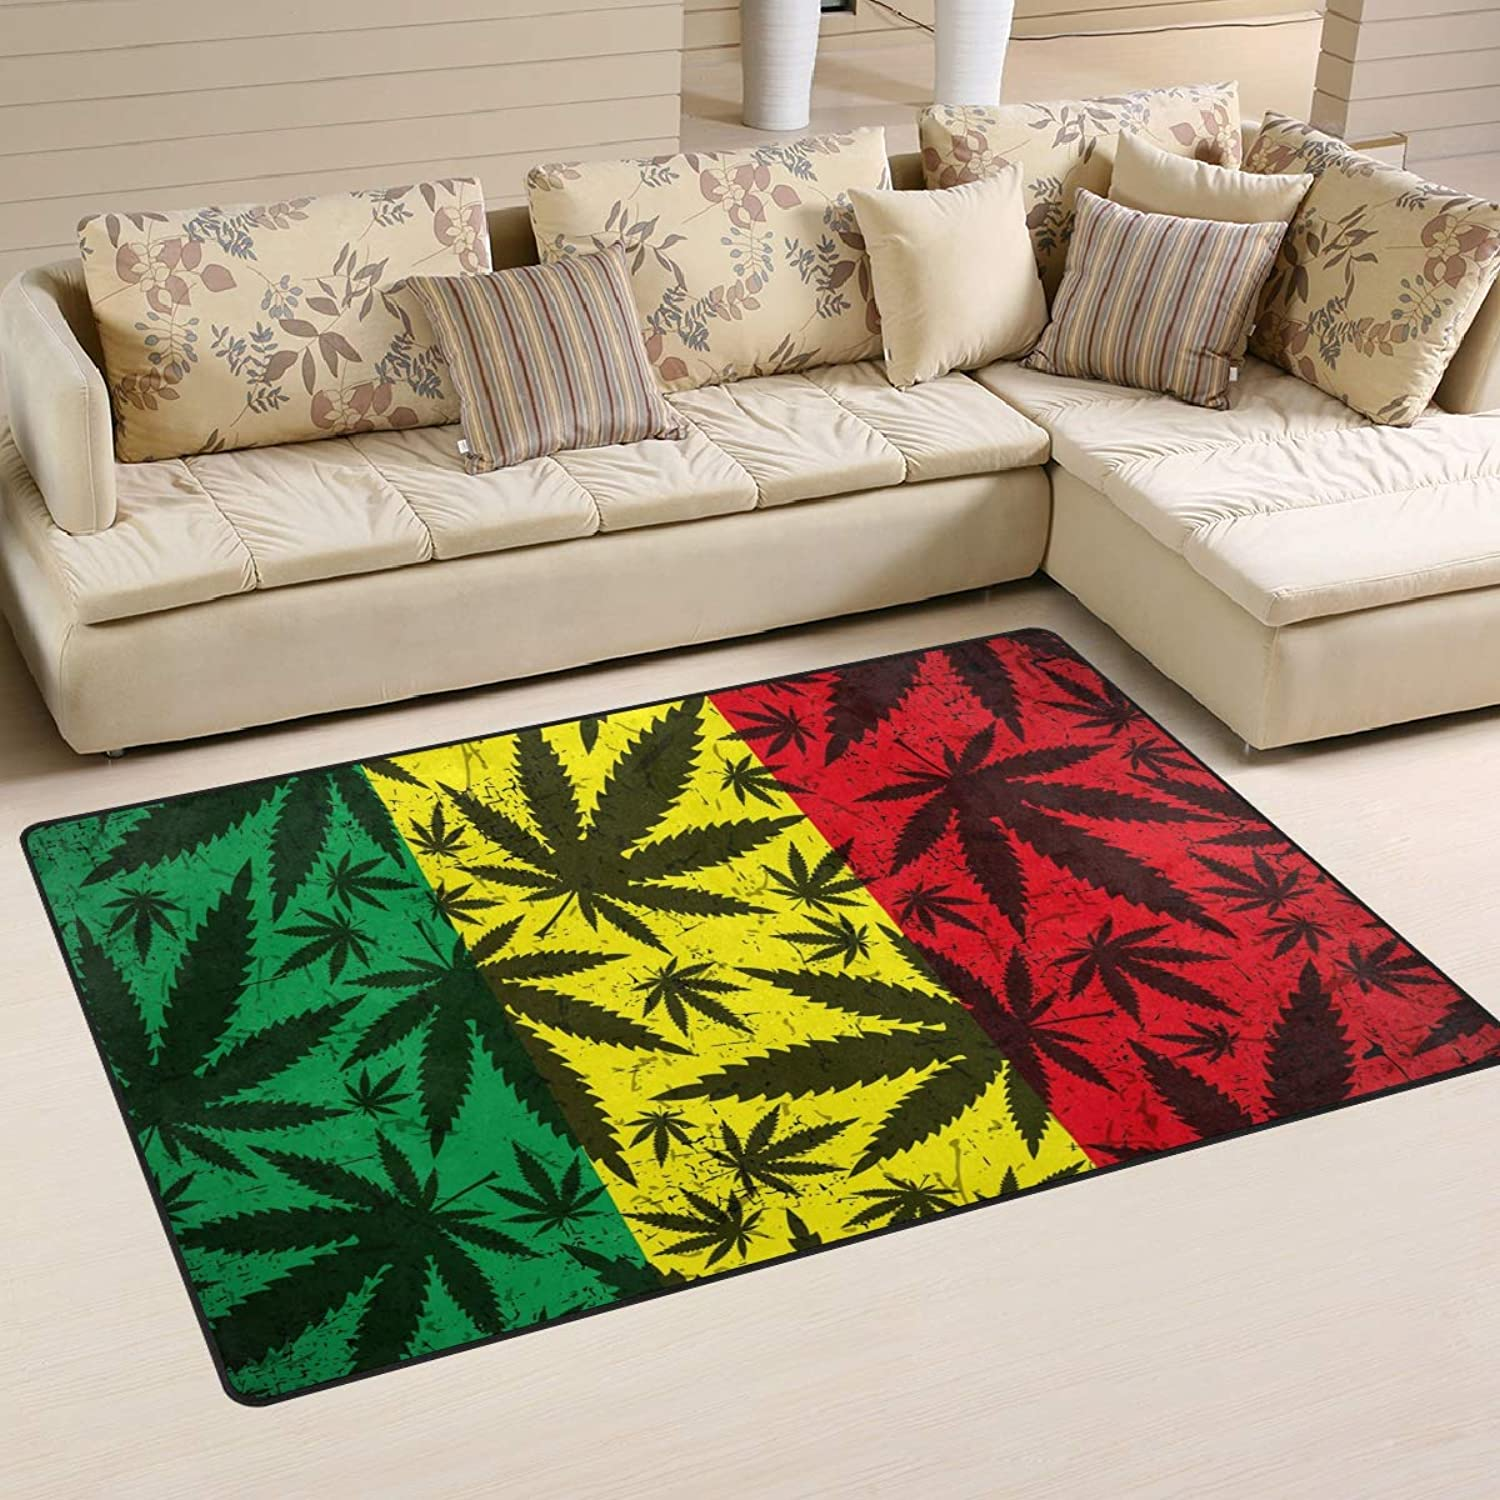 Area Rugs Doormats Red Yellow Green Leaf 5'x3'3 (60x39 Inches) Non-Slip Floor Mat Soft Carpet for Living Dining Bedroom Home